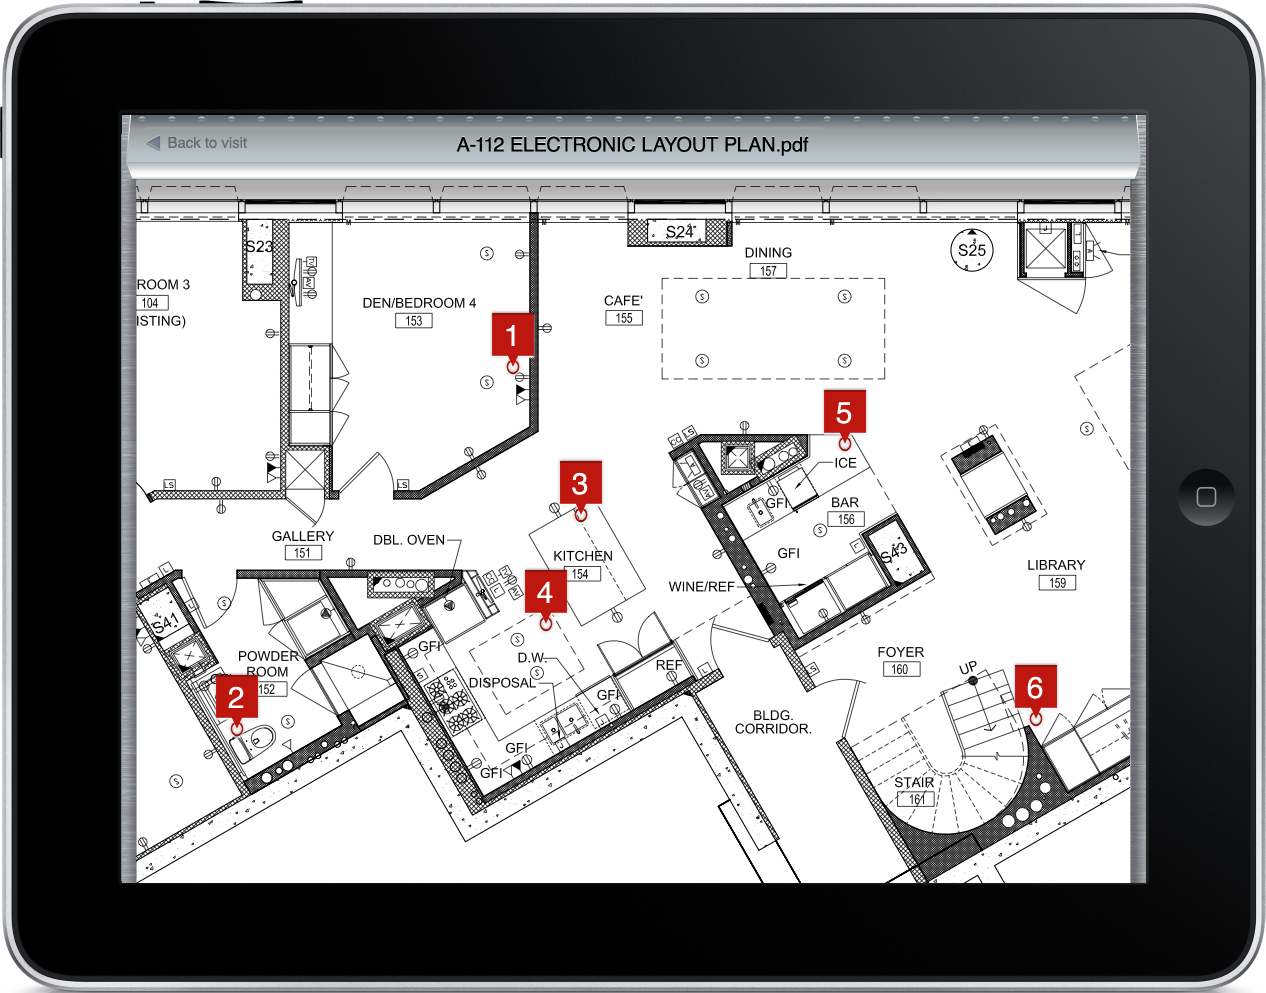 100 apps for floor plans ipad floor plan app ipad fabulous 28 apps for floor plans ipad Kitchen design program for ipad